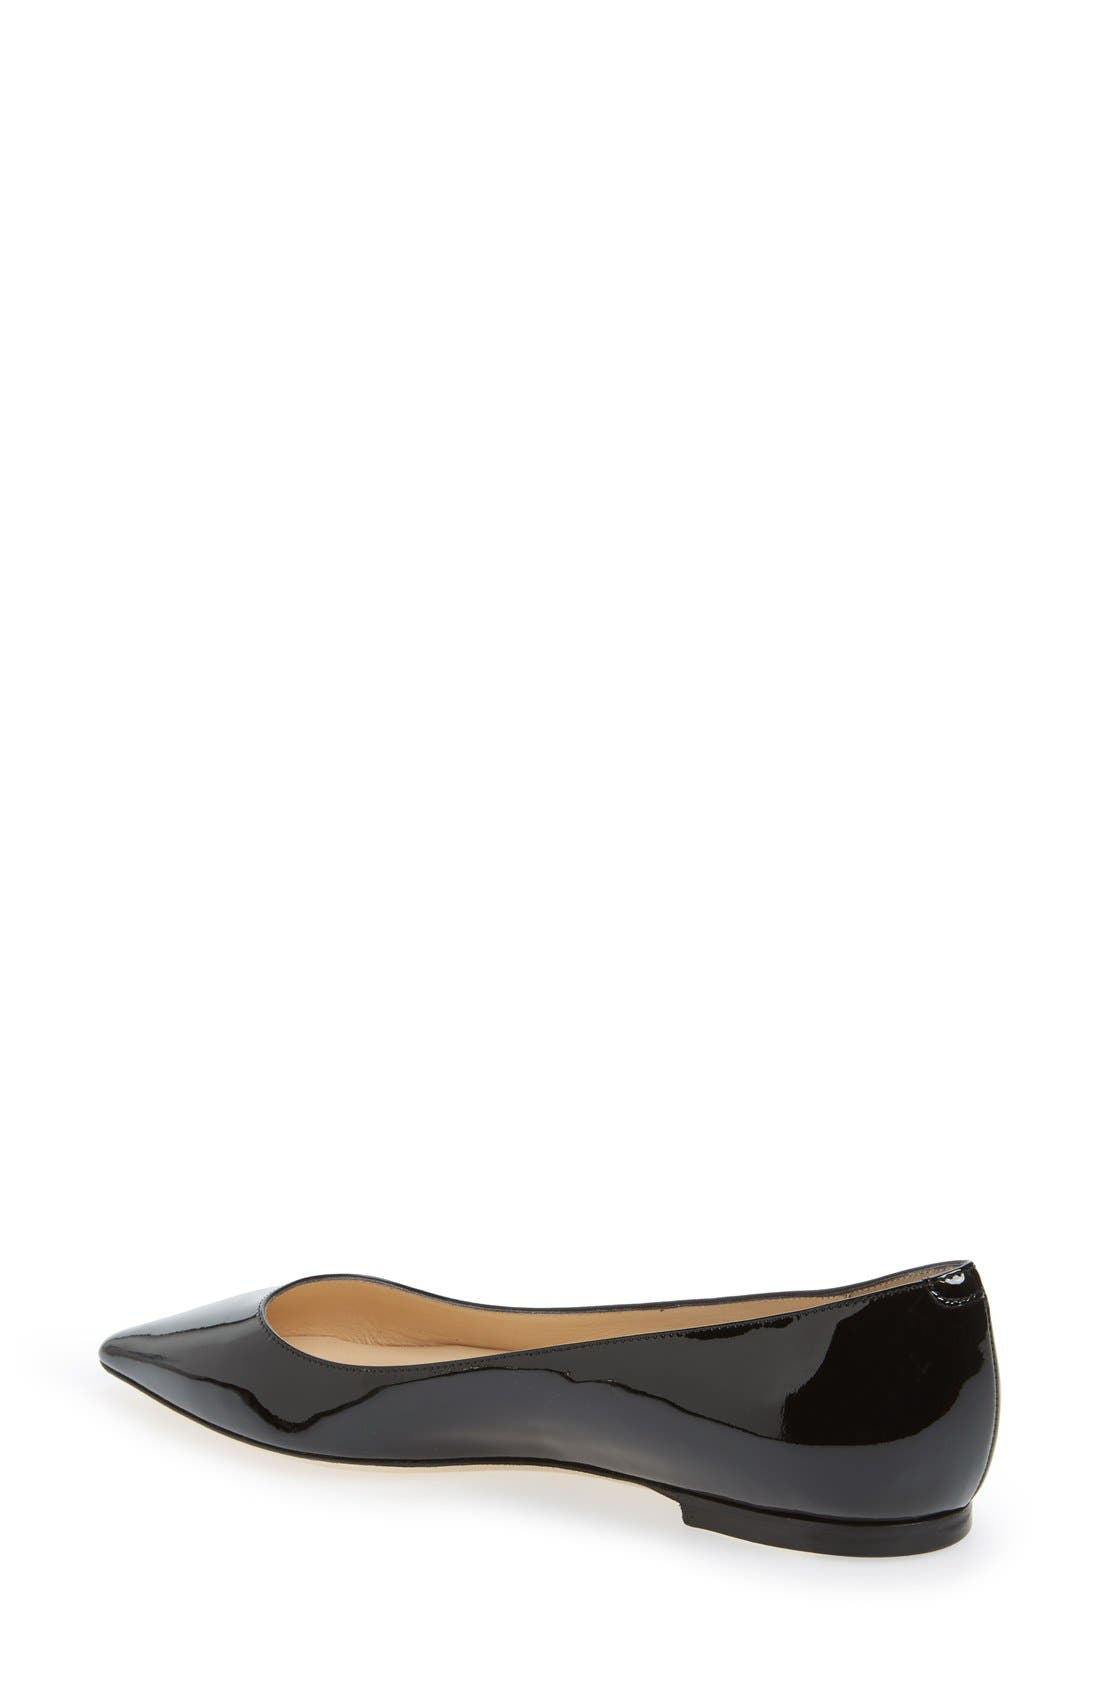 JIMMY CHOO,                             'Romy' Pointy Toe Flat,                             Alternate thumbnail 2, color,                             004